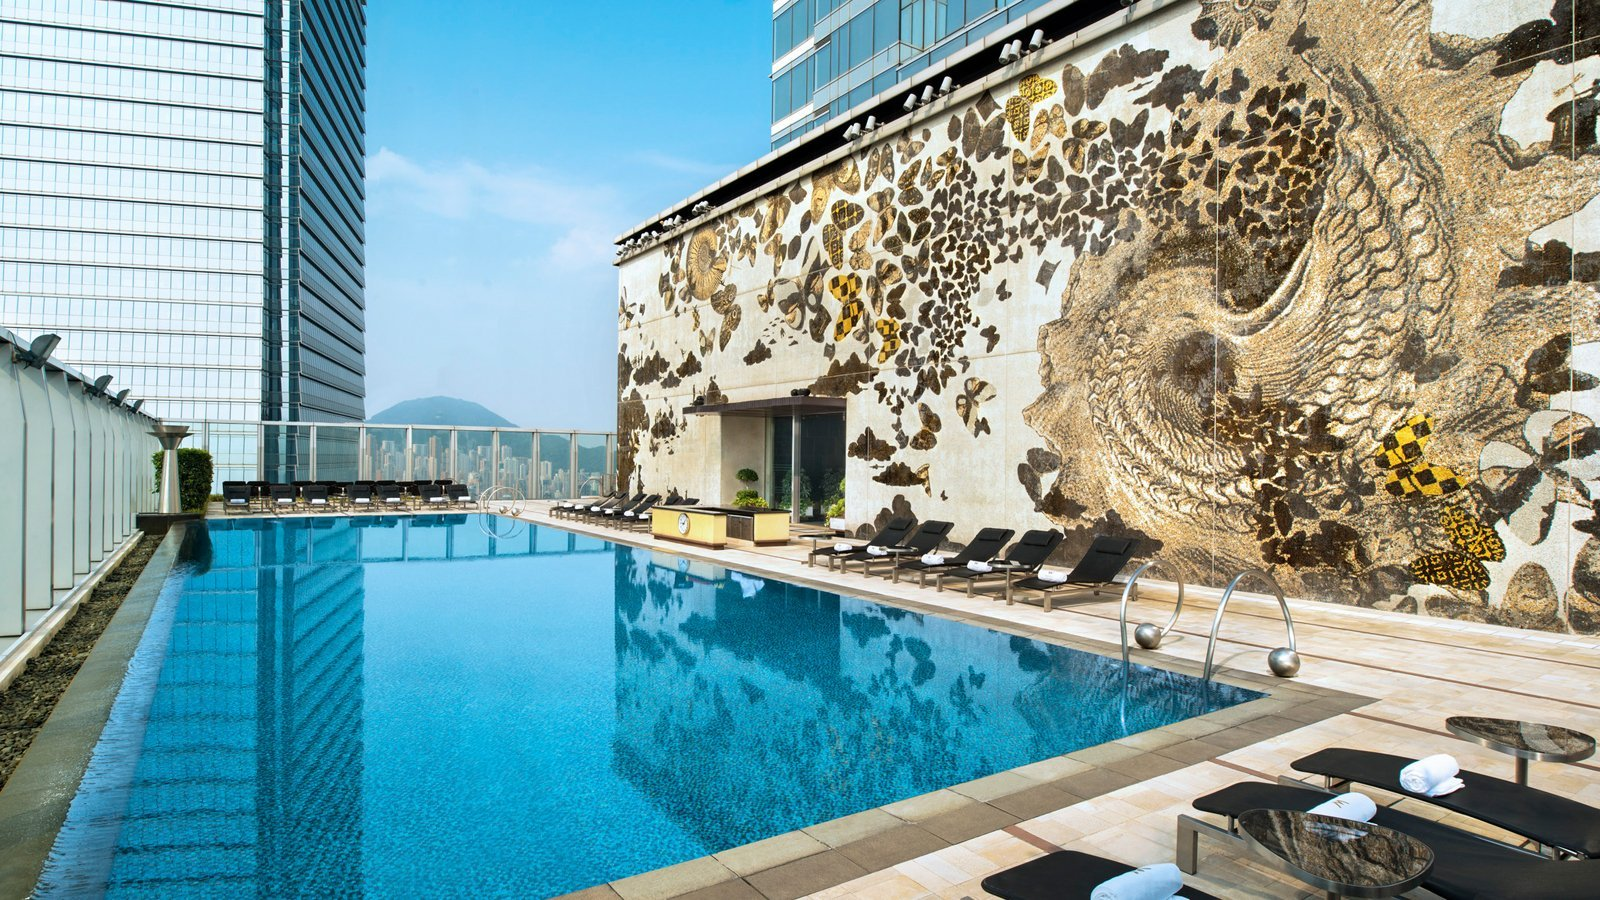 In addition to a sweeping city view, the W Hong Kong in Kowloon features an eye-catching mosaic wall made from more than 200,000 tiles.